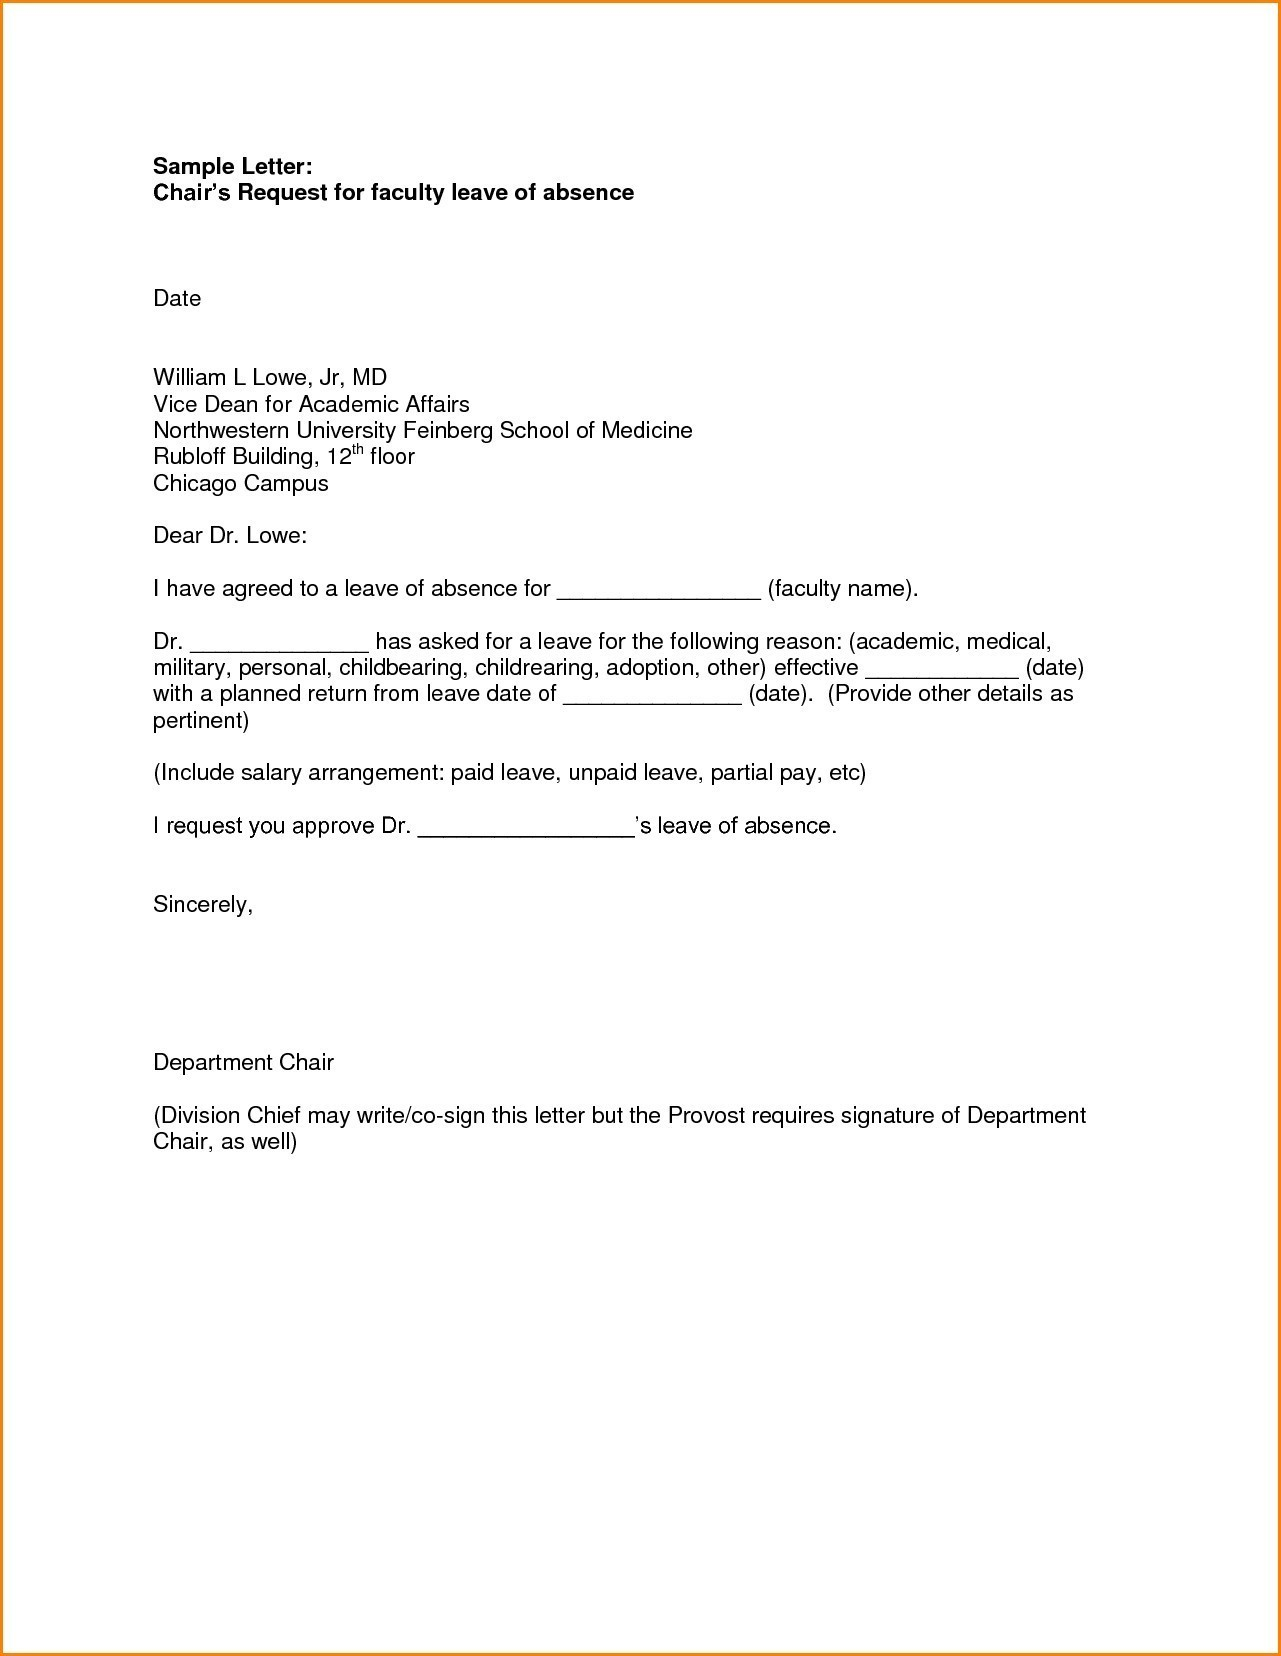 Personal Leave Of Absence Letter Template - How to format A Leave Absence Letter New Leave Absence Letter